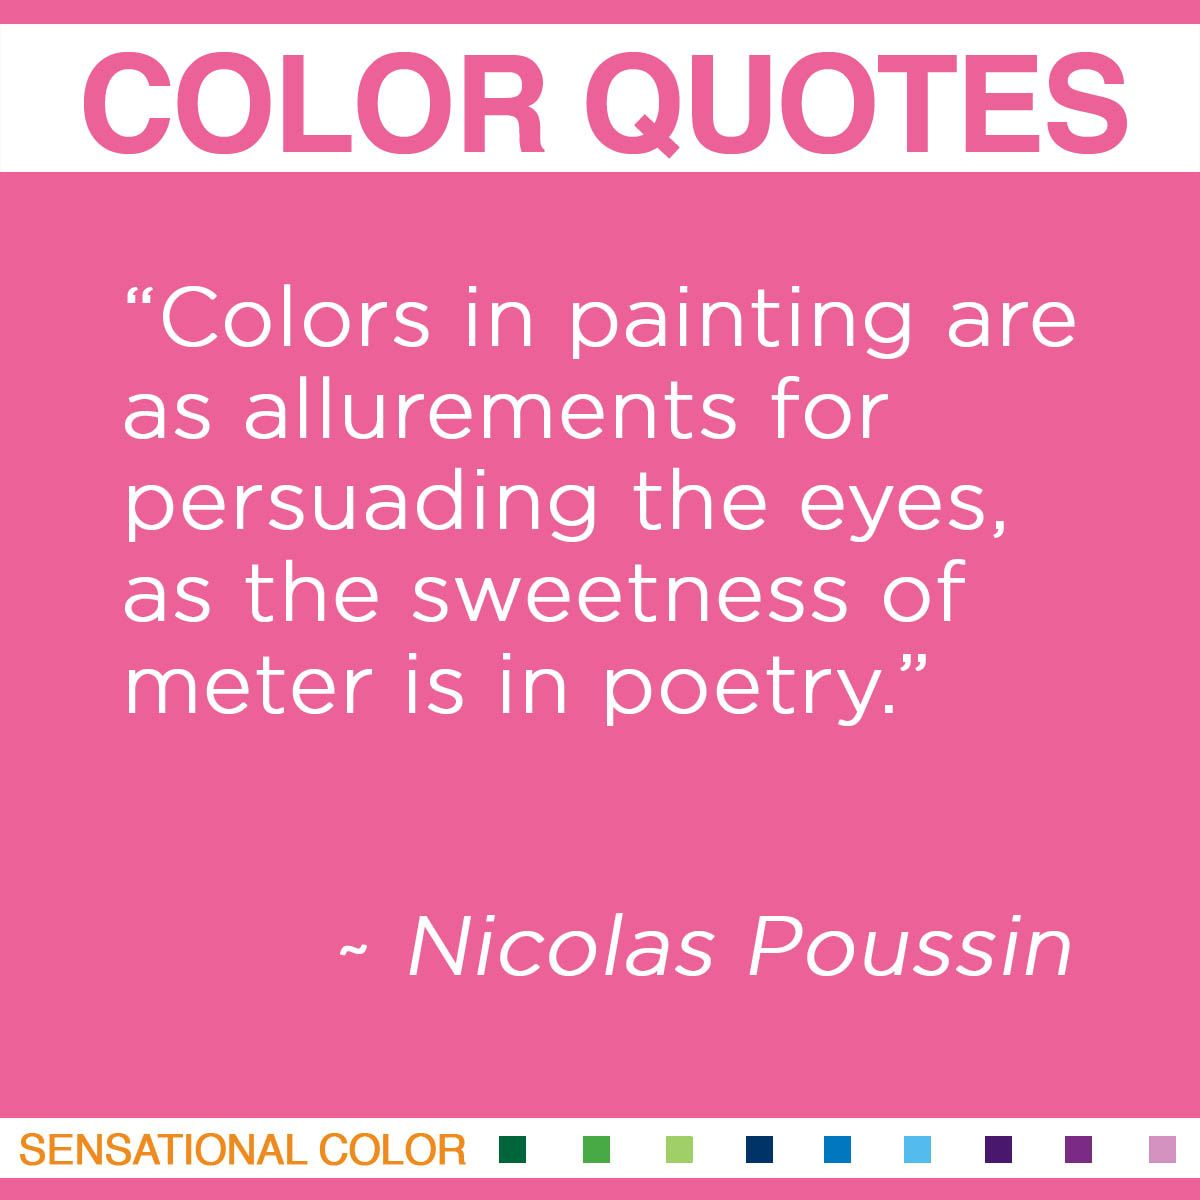 """Colors in painting are as allurements for persuading the eyes, as the sweetness of meter is in poetry."" - Nicolas Poussin"